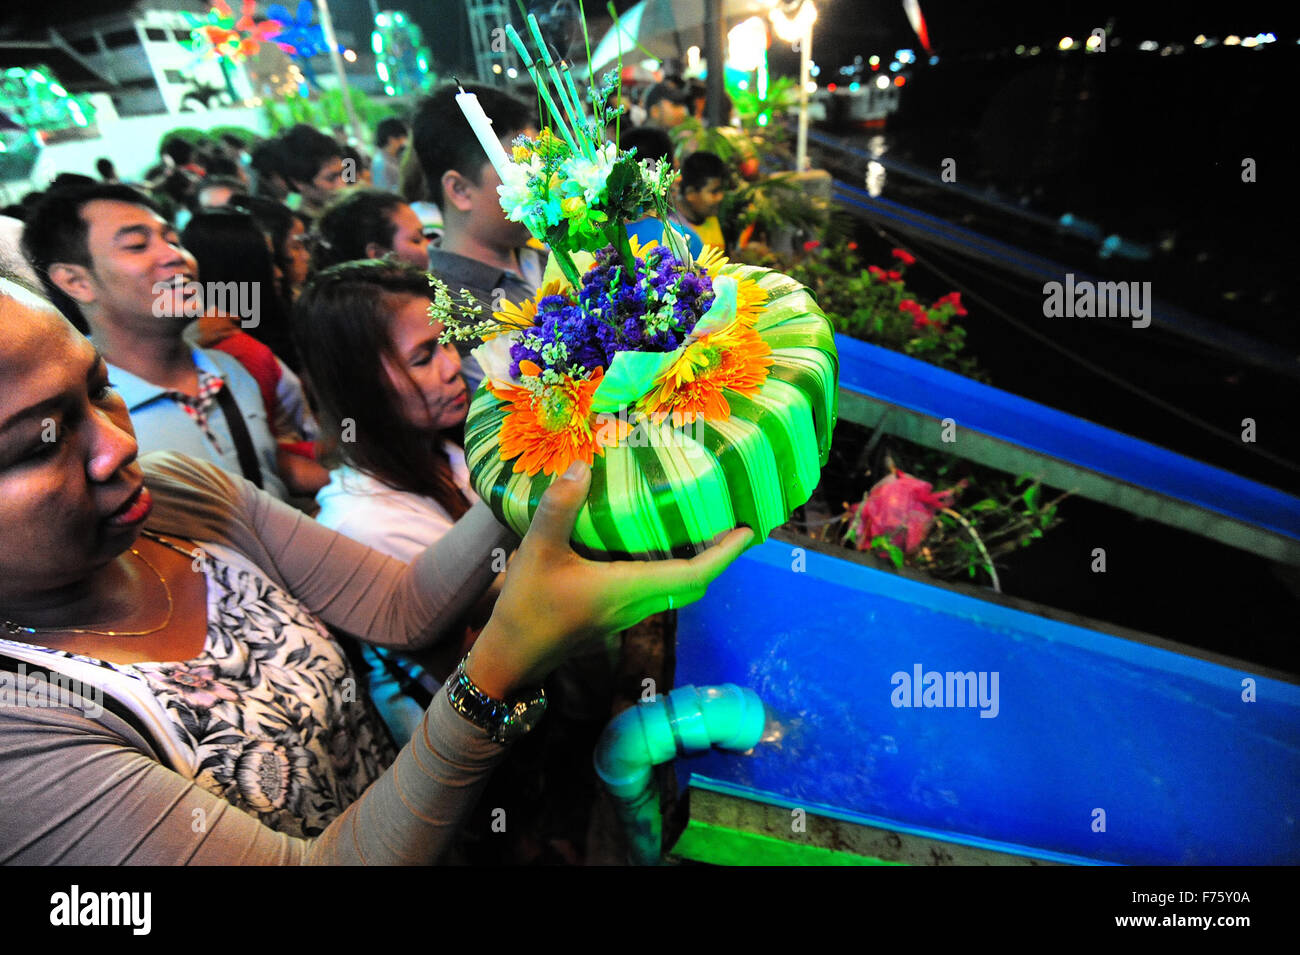 Bangkok, Thailand. 25th Nov, 2015. People pray before casting water lanterns into the Chao Phraya River during the - Stock Image